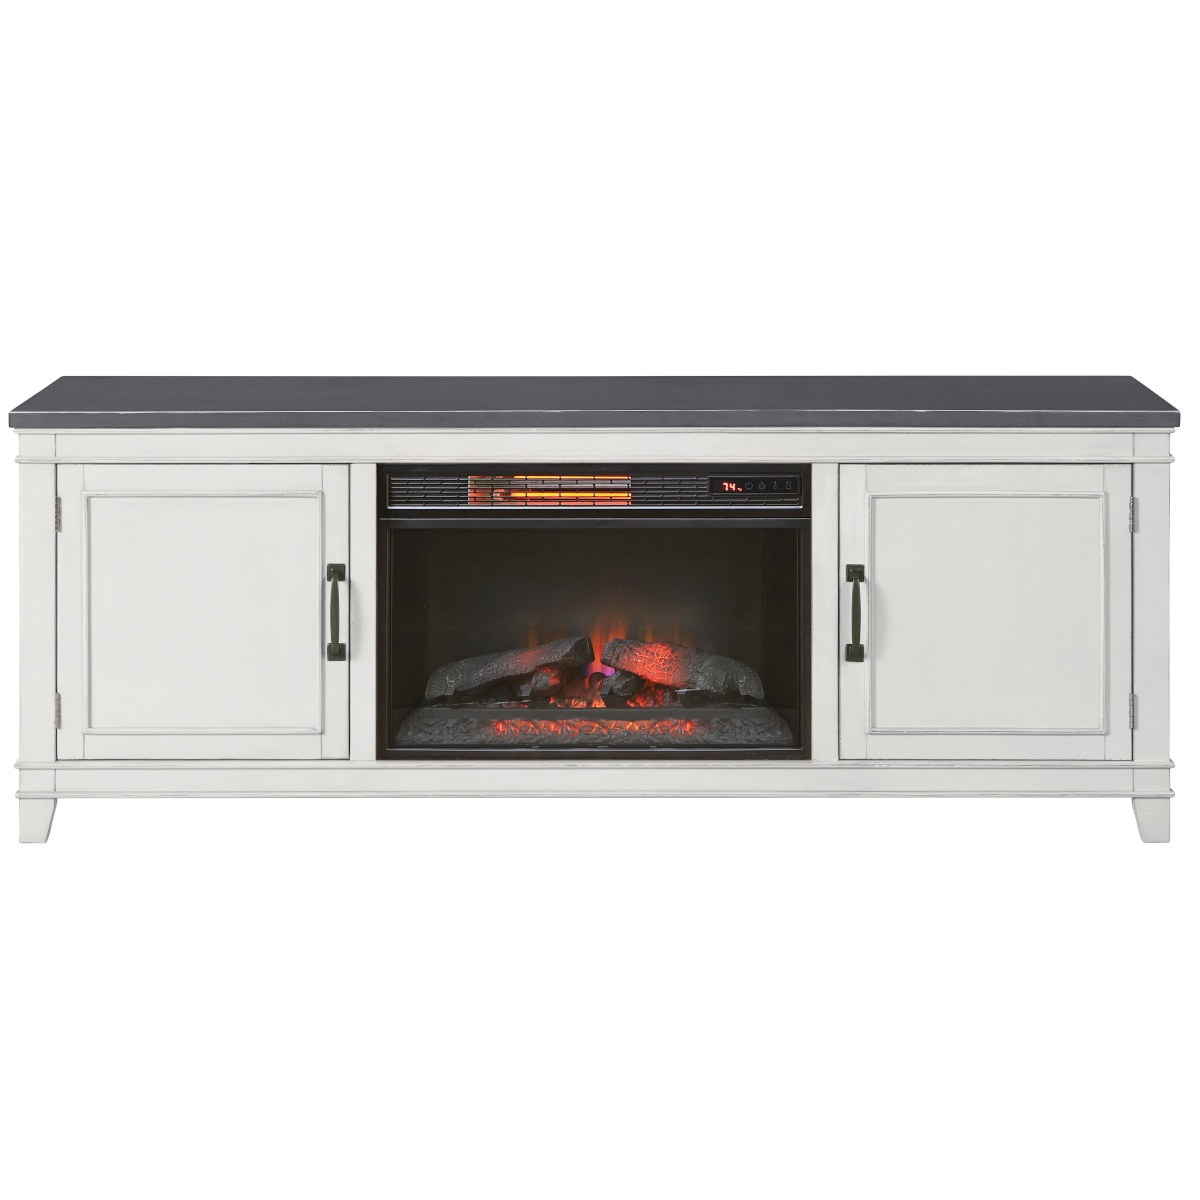 antique white and grey television stand with 26 inch electric fireplace insert